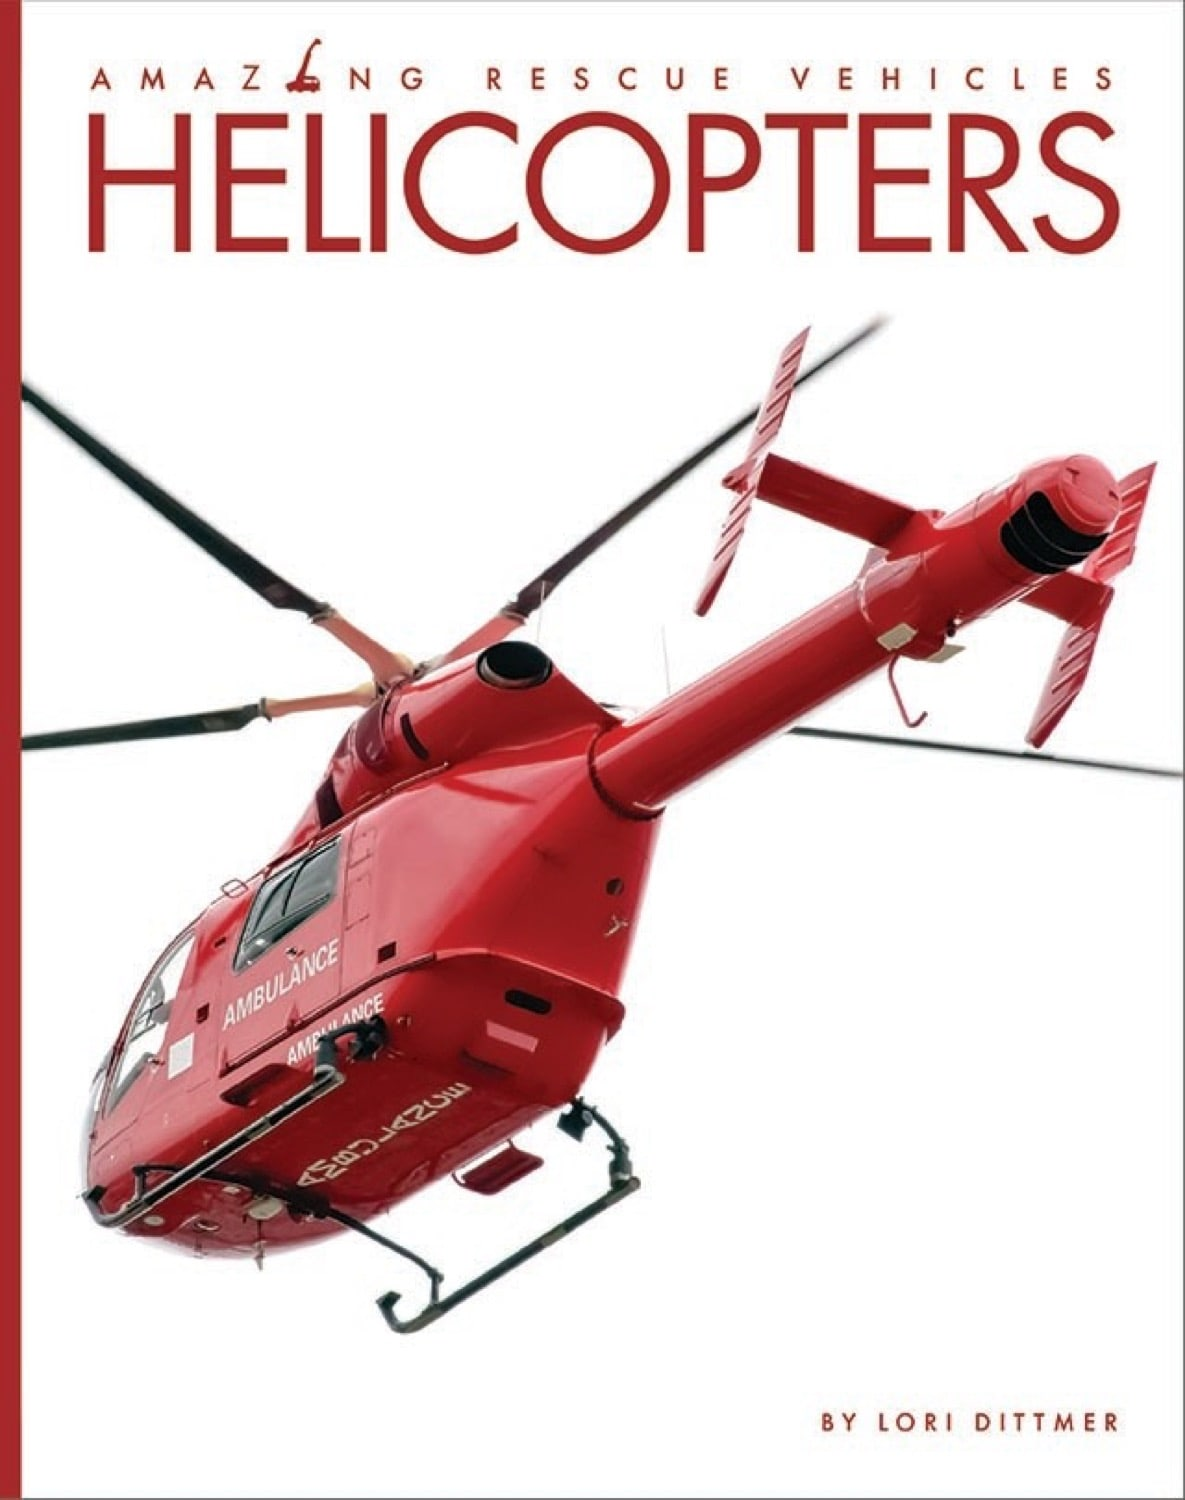 Amazing Rescue Vehicles: Helicopters